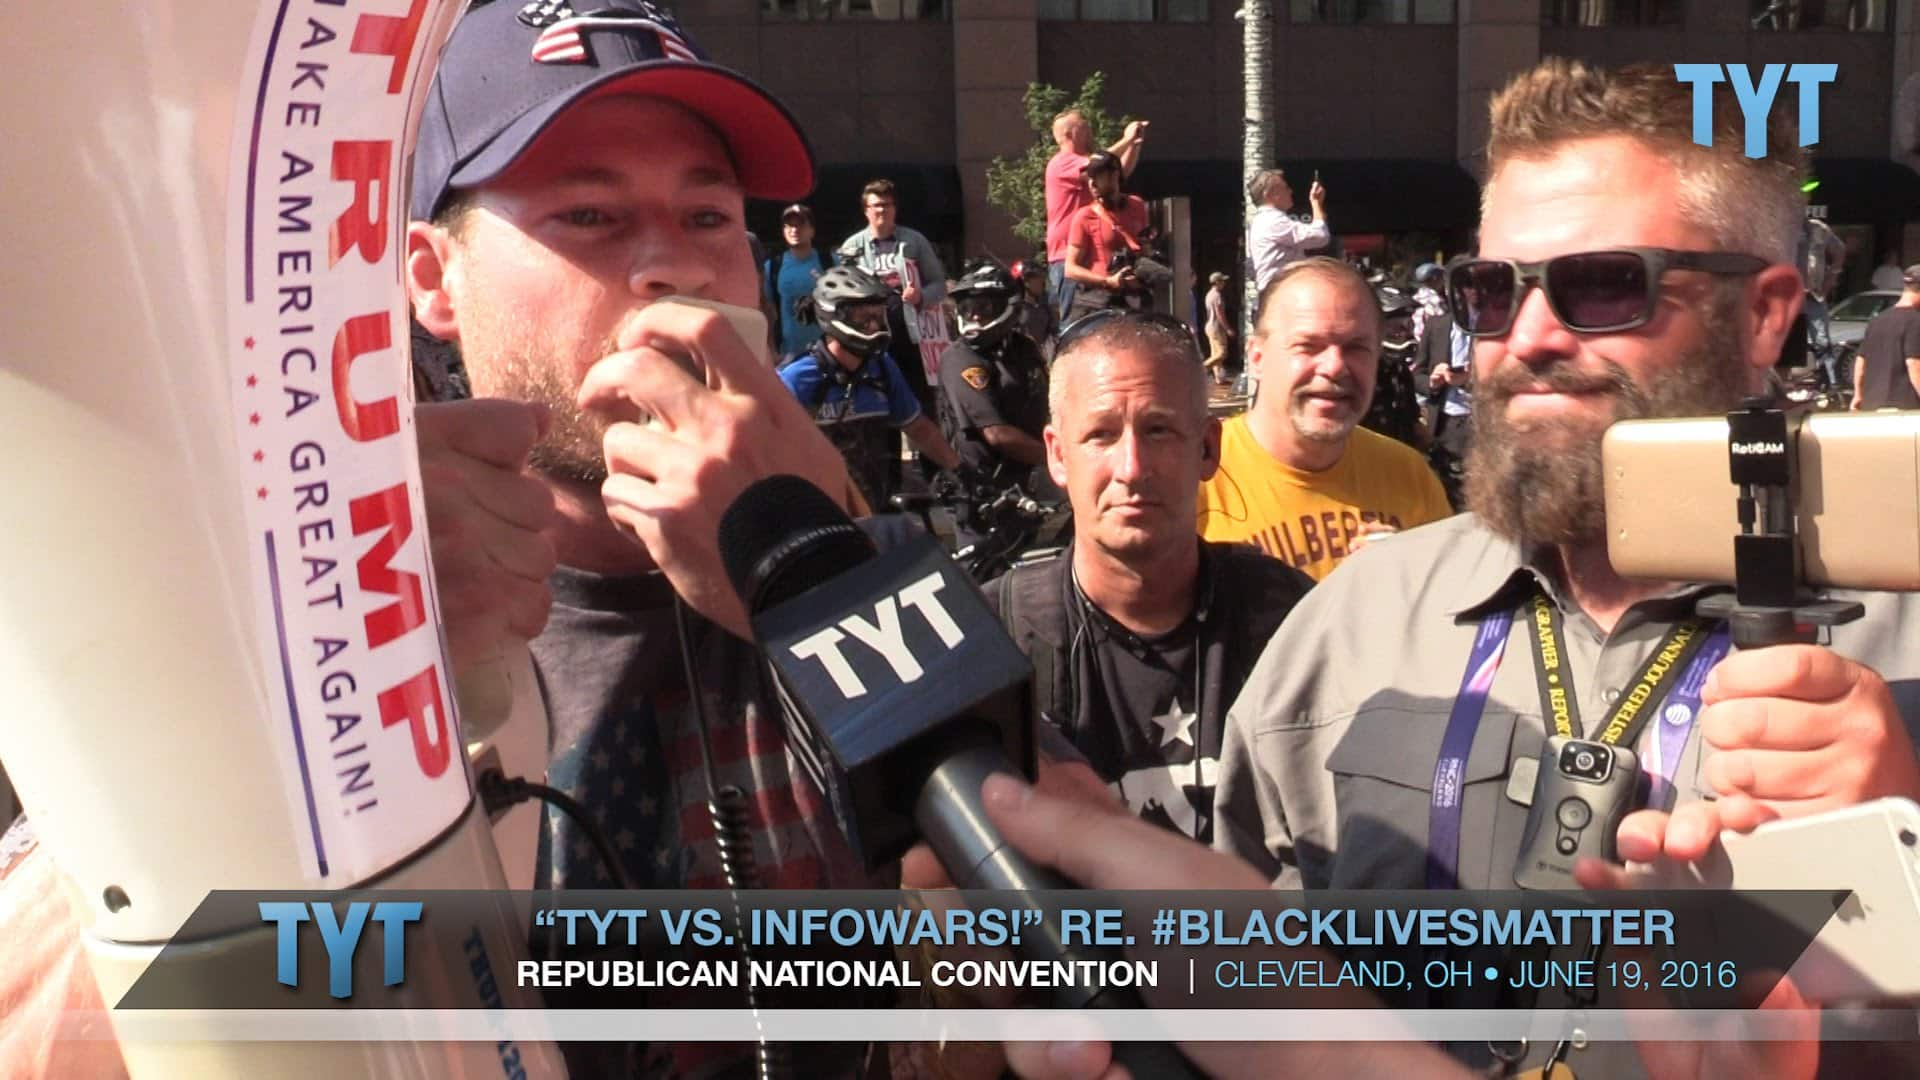 TYT vs. InfoWars re. #BlackLivesMatter At RNC Convention 35